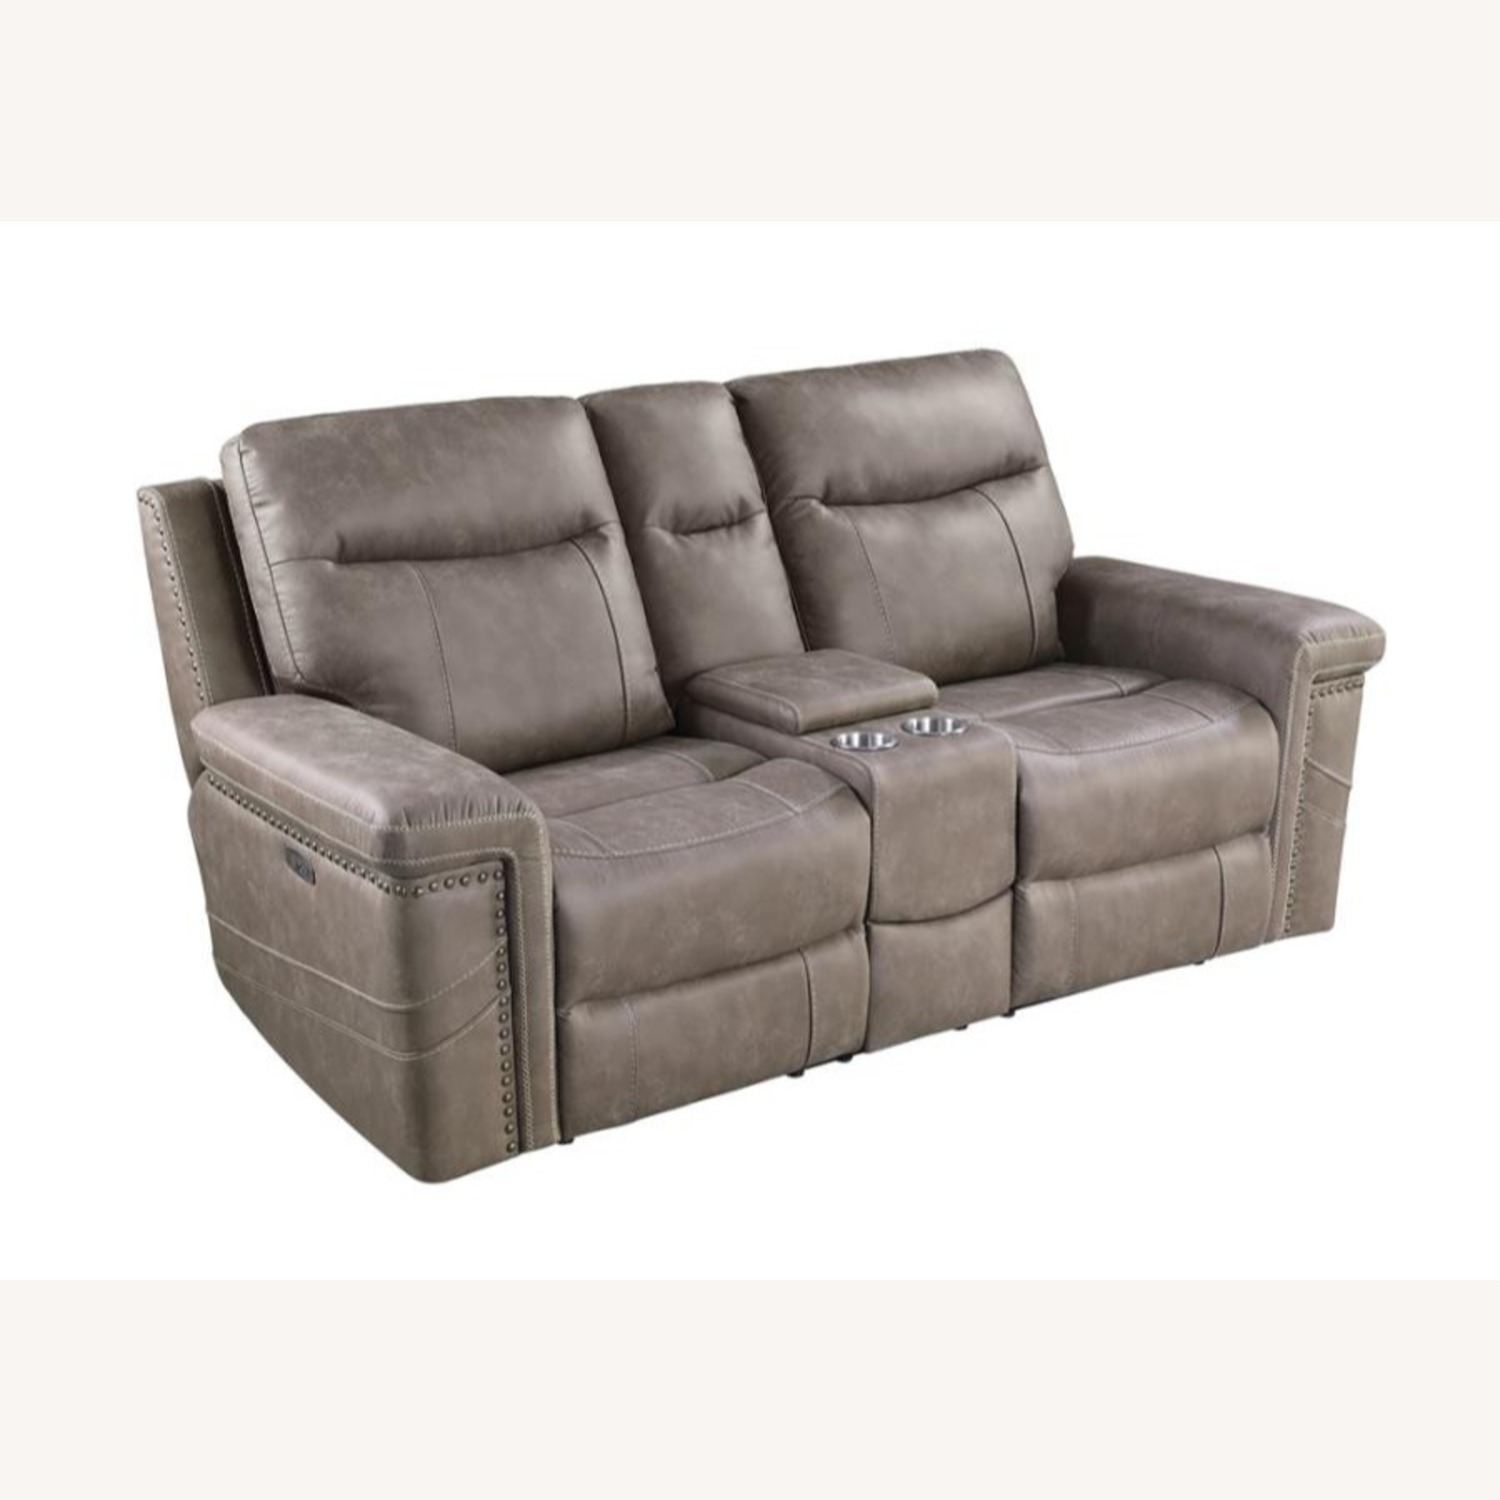 Power Loveseat Recliner In Taupe Upholstery - image-0